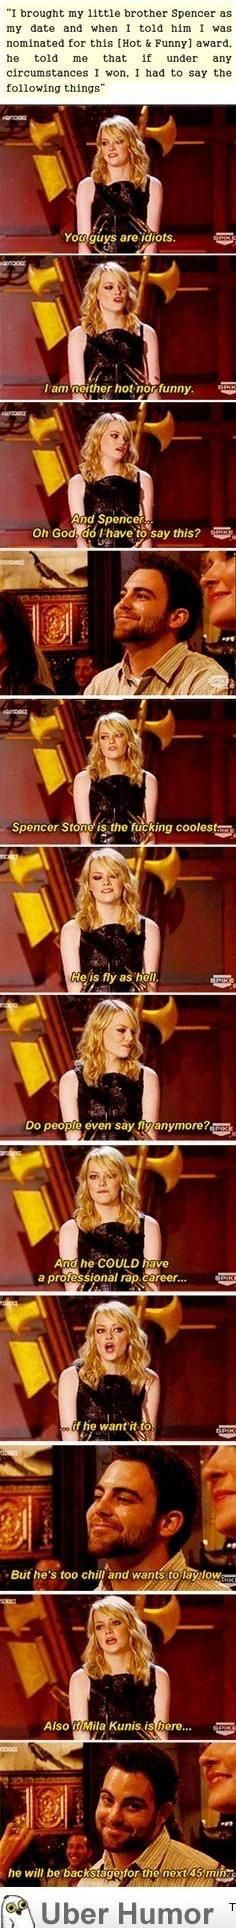 Emma Stone's brother messing with her   funny pictures